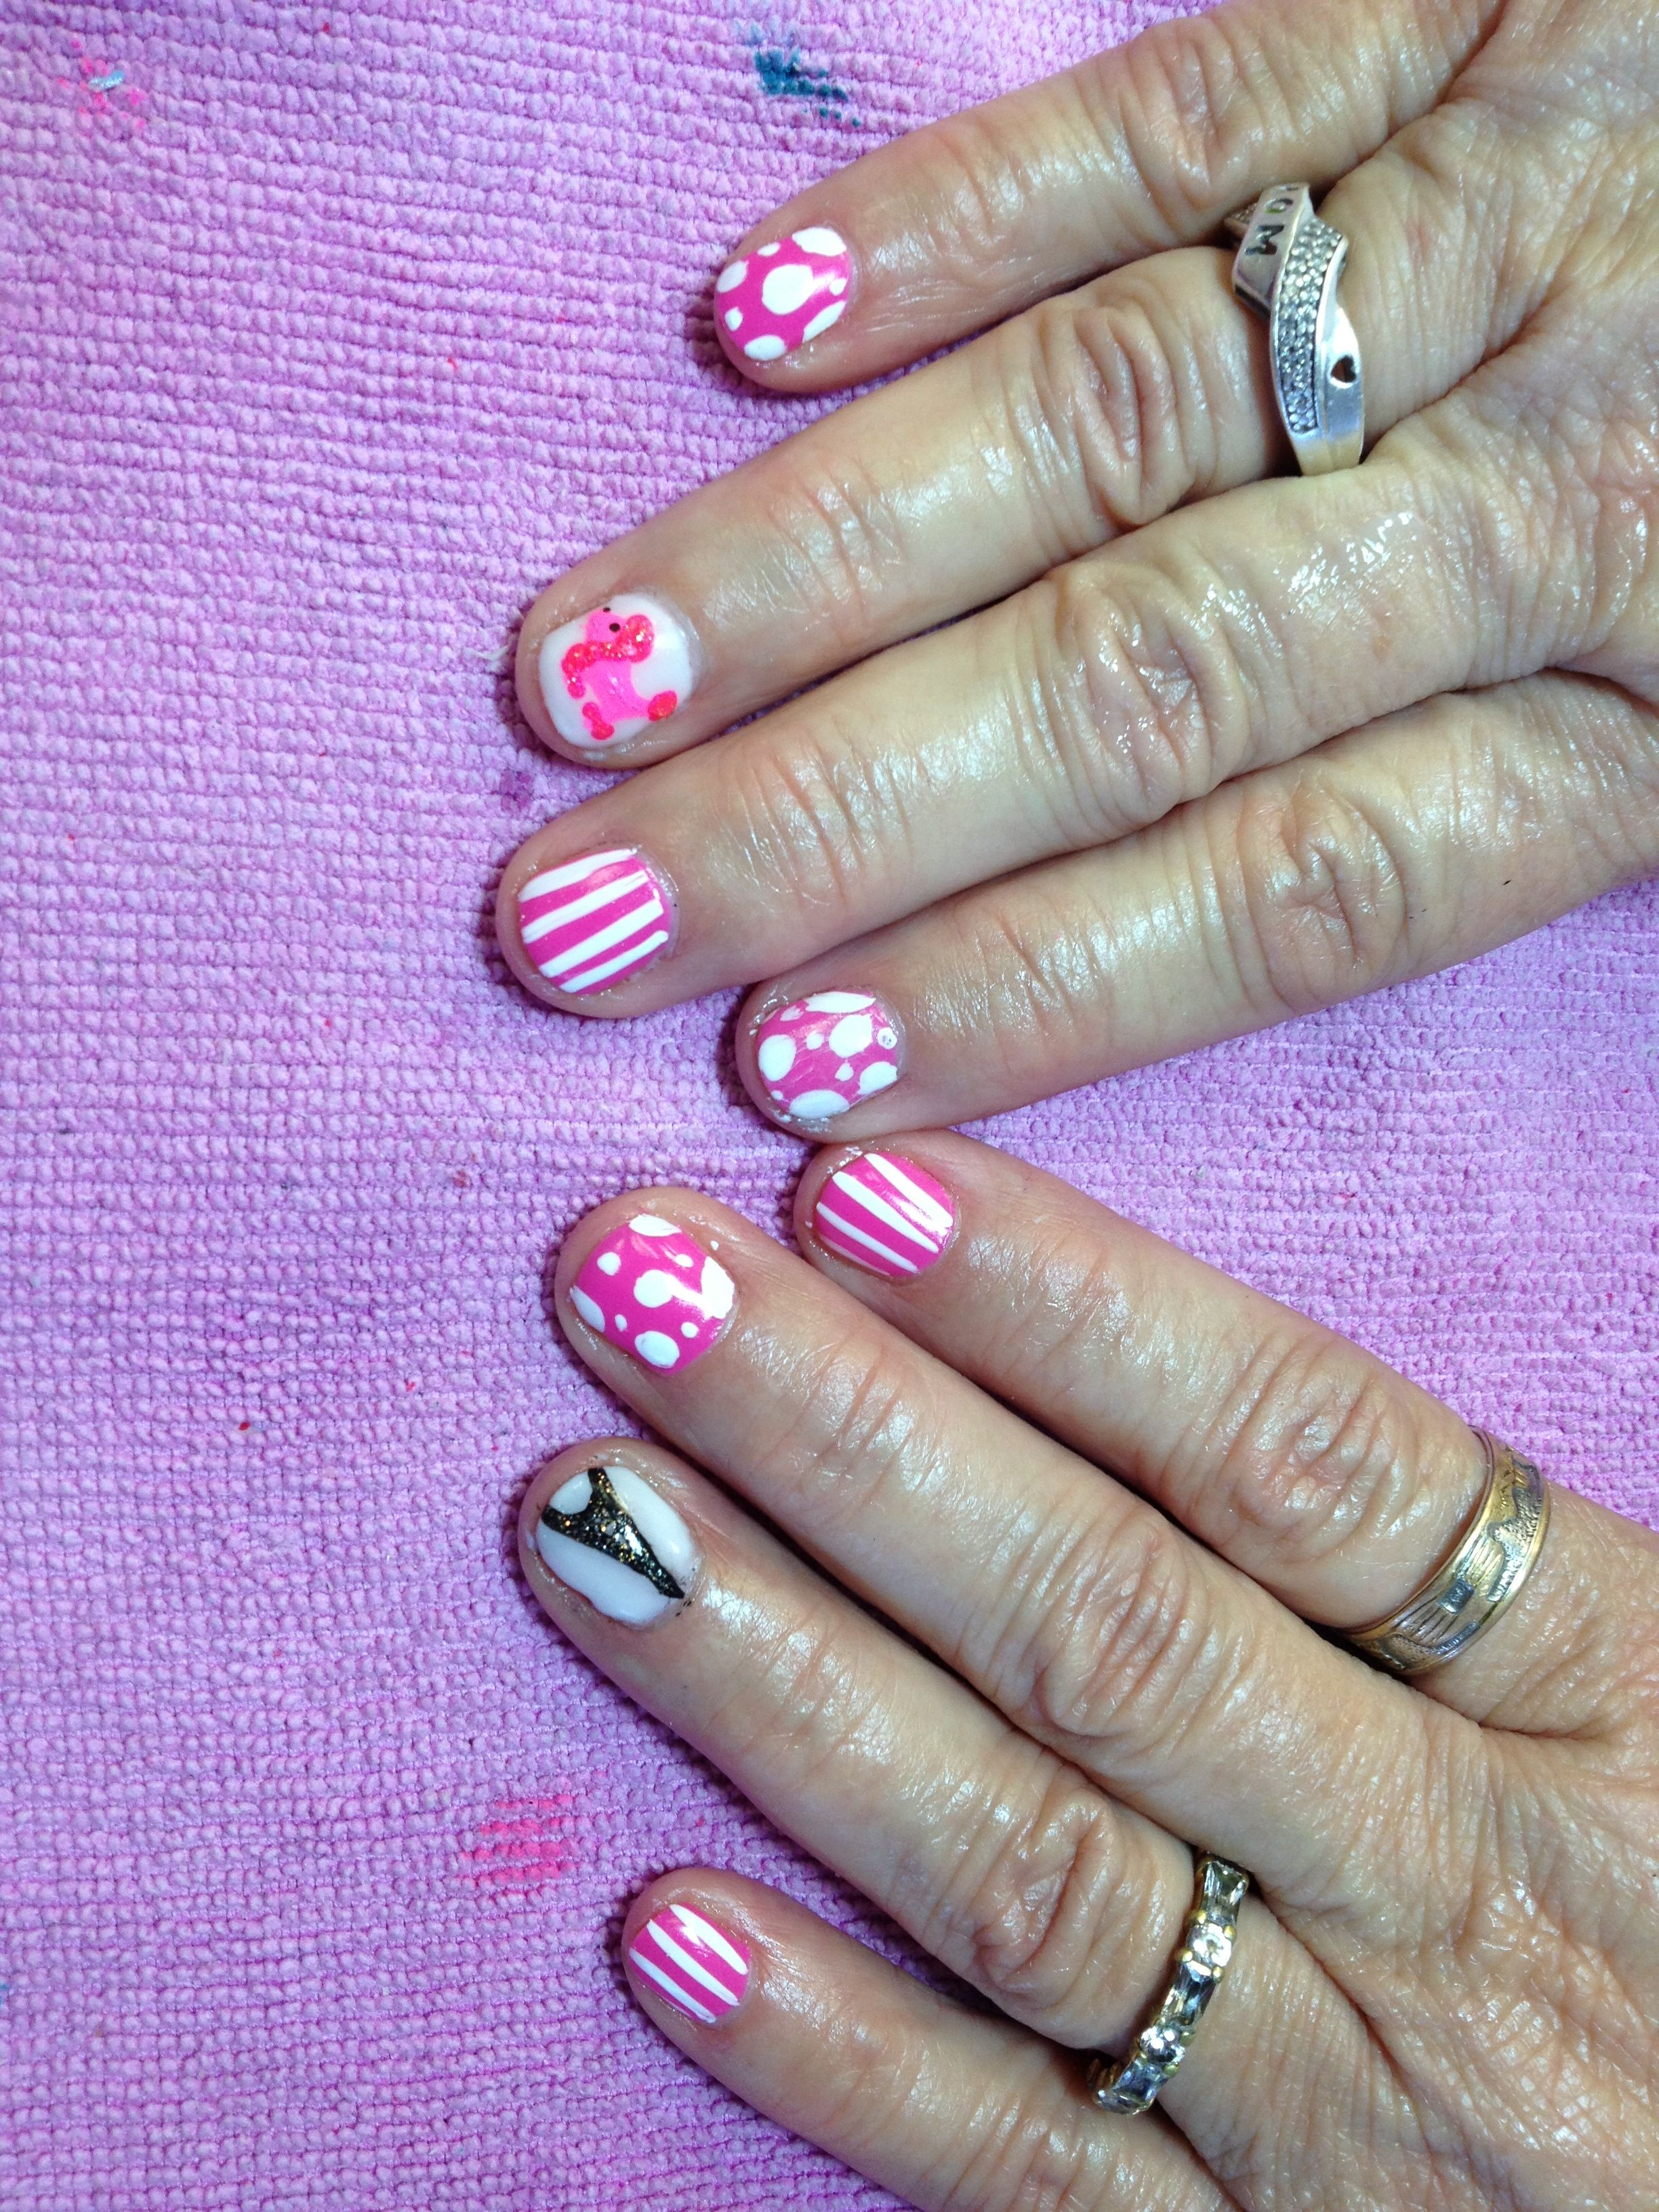 Pin by Kristi Owens on Nails | Pinterest